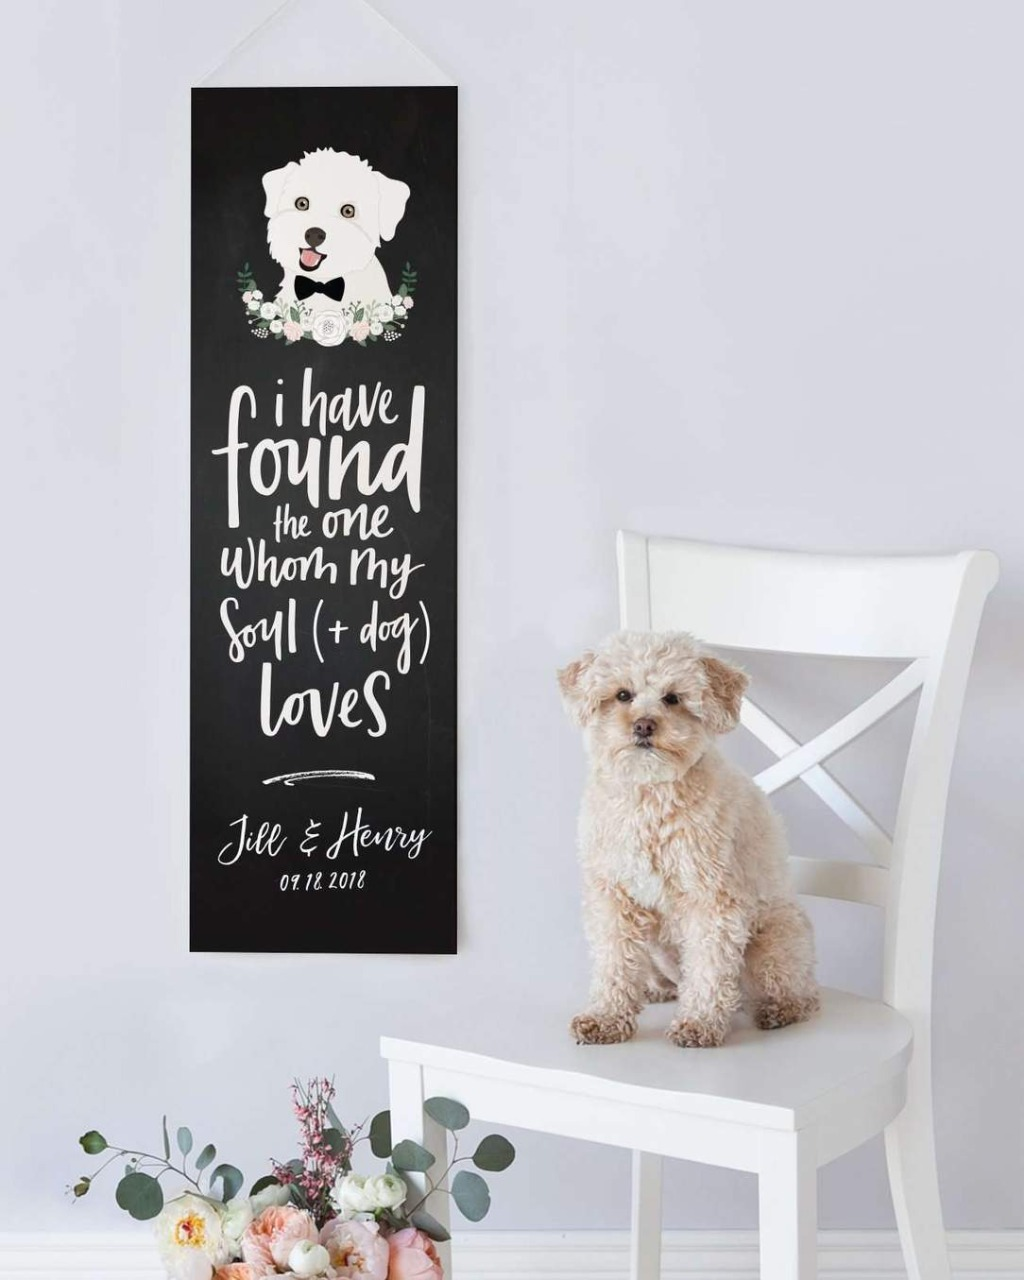 Our chalkboard wedding banner features an illustrated portrait of your dog, on a canvas banner, with the quote I have found the one